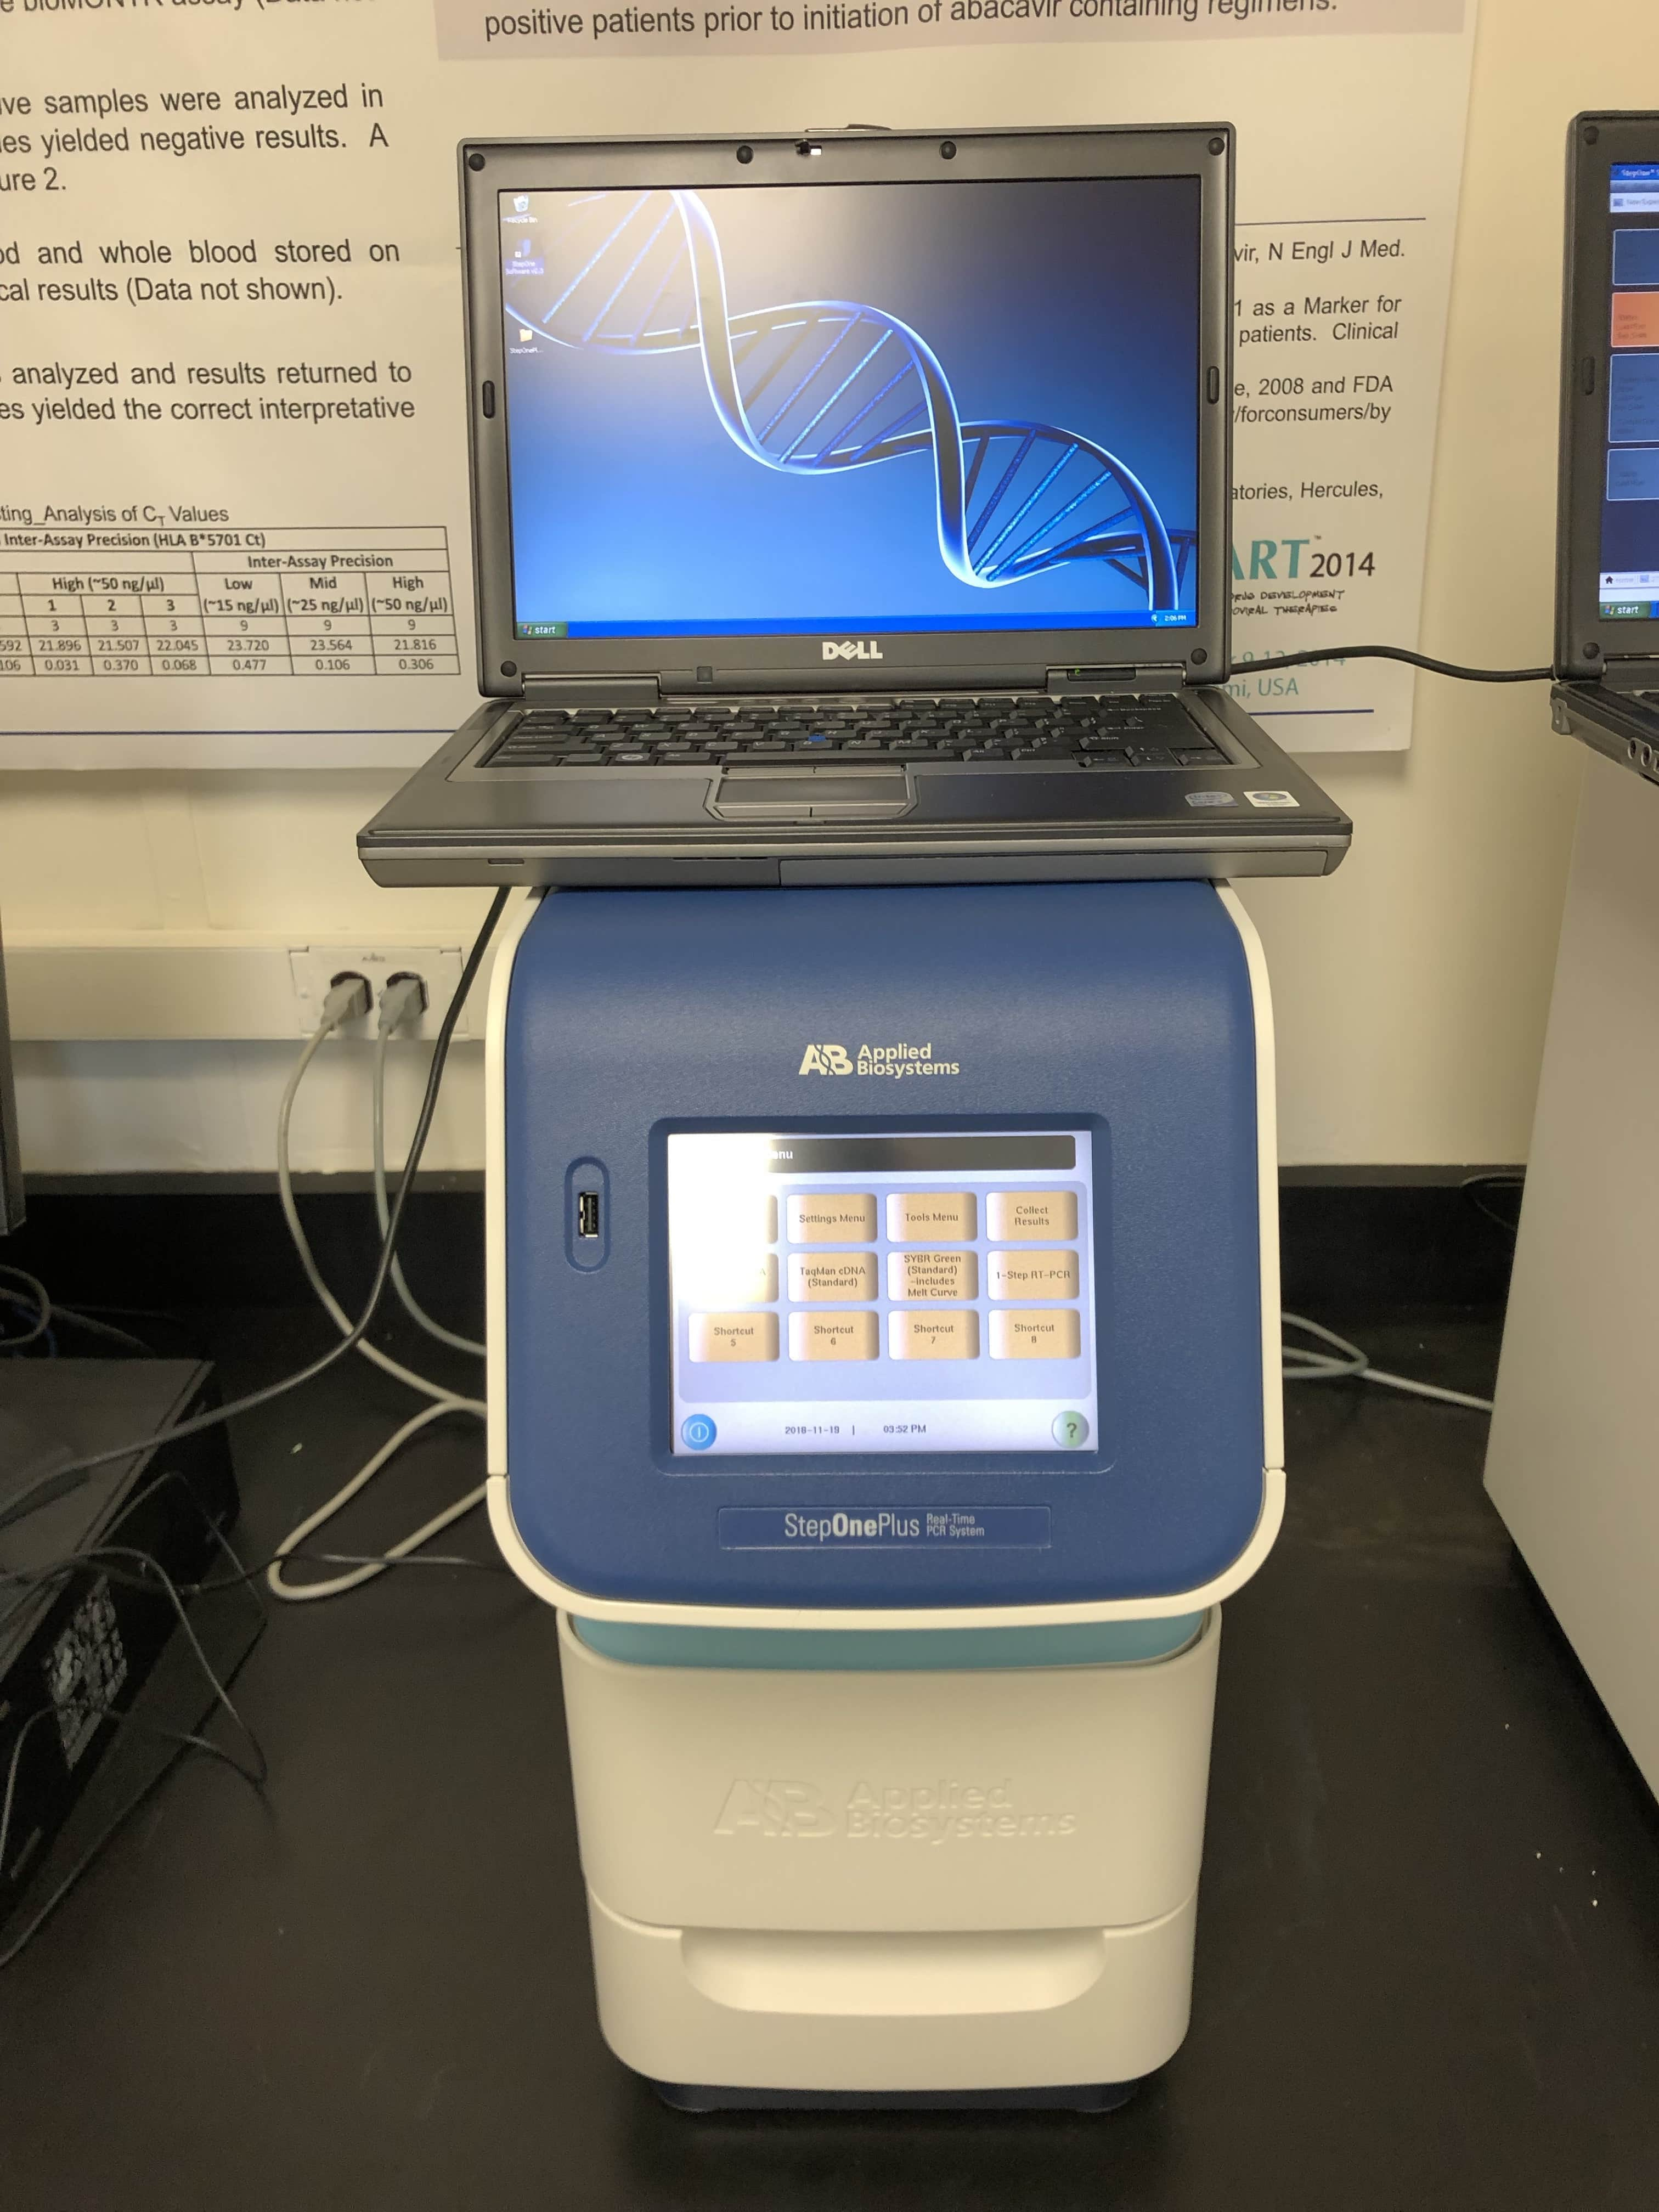 ABI StepOne Plus Real-Time PCR System Year 2011-New Performance Testing-Original Packaging!